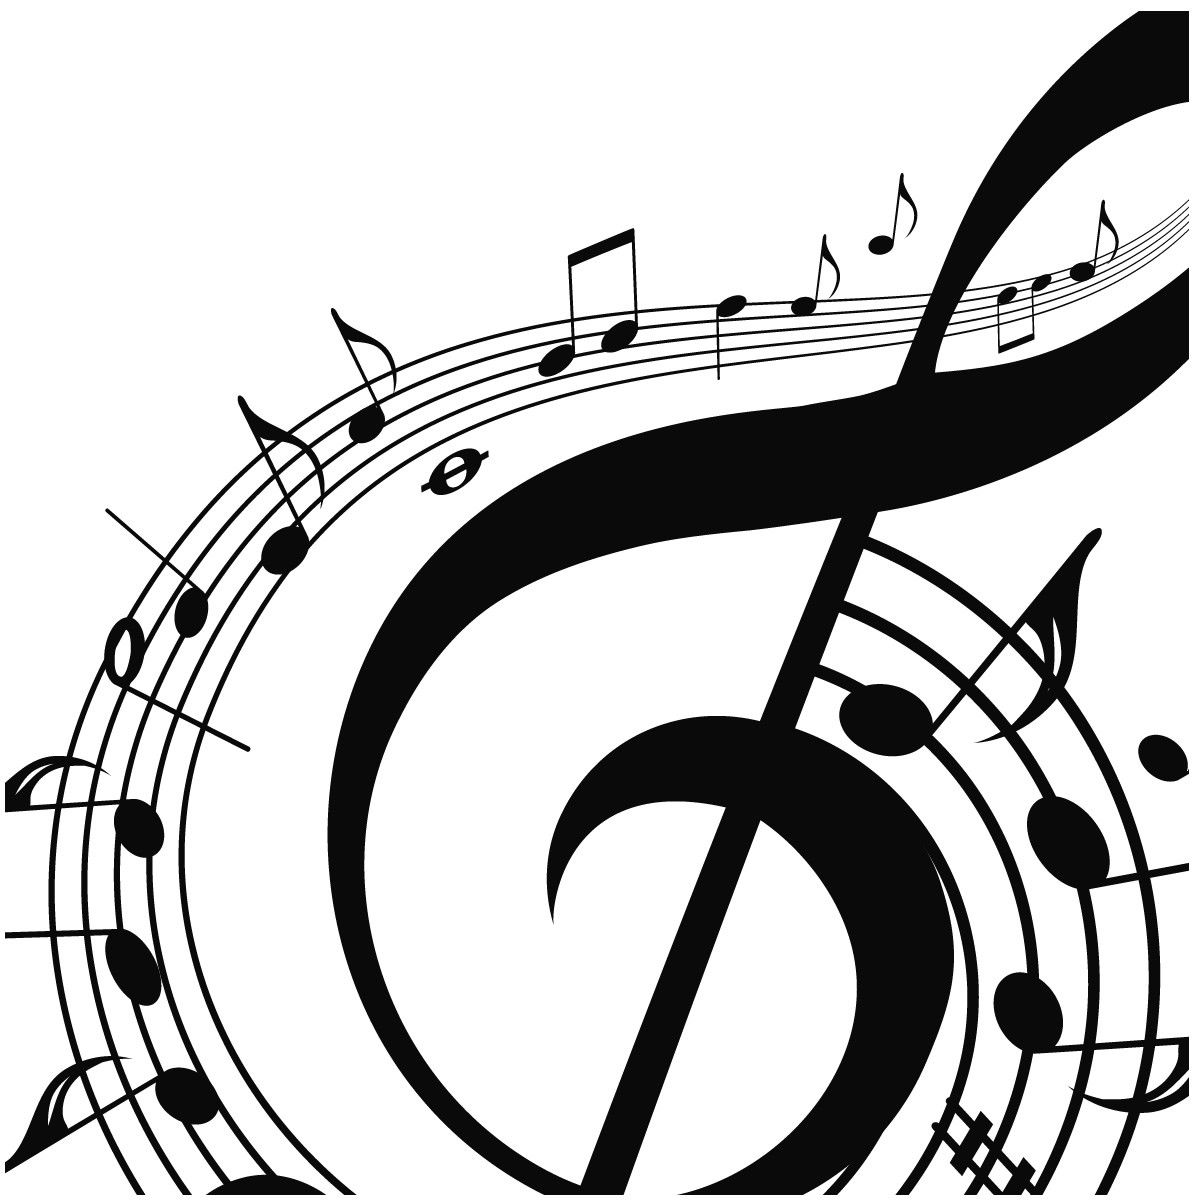 Music note png silhouette. Musical notes swirling around